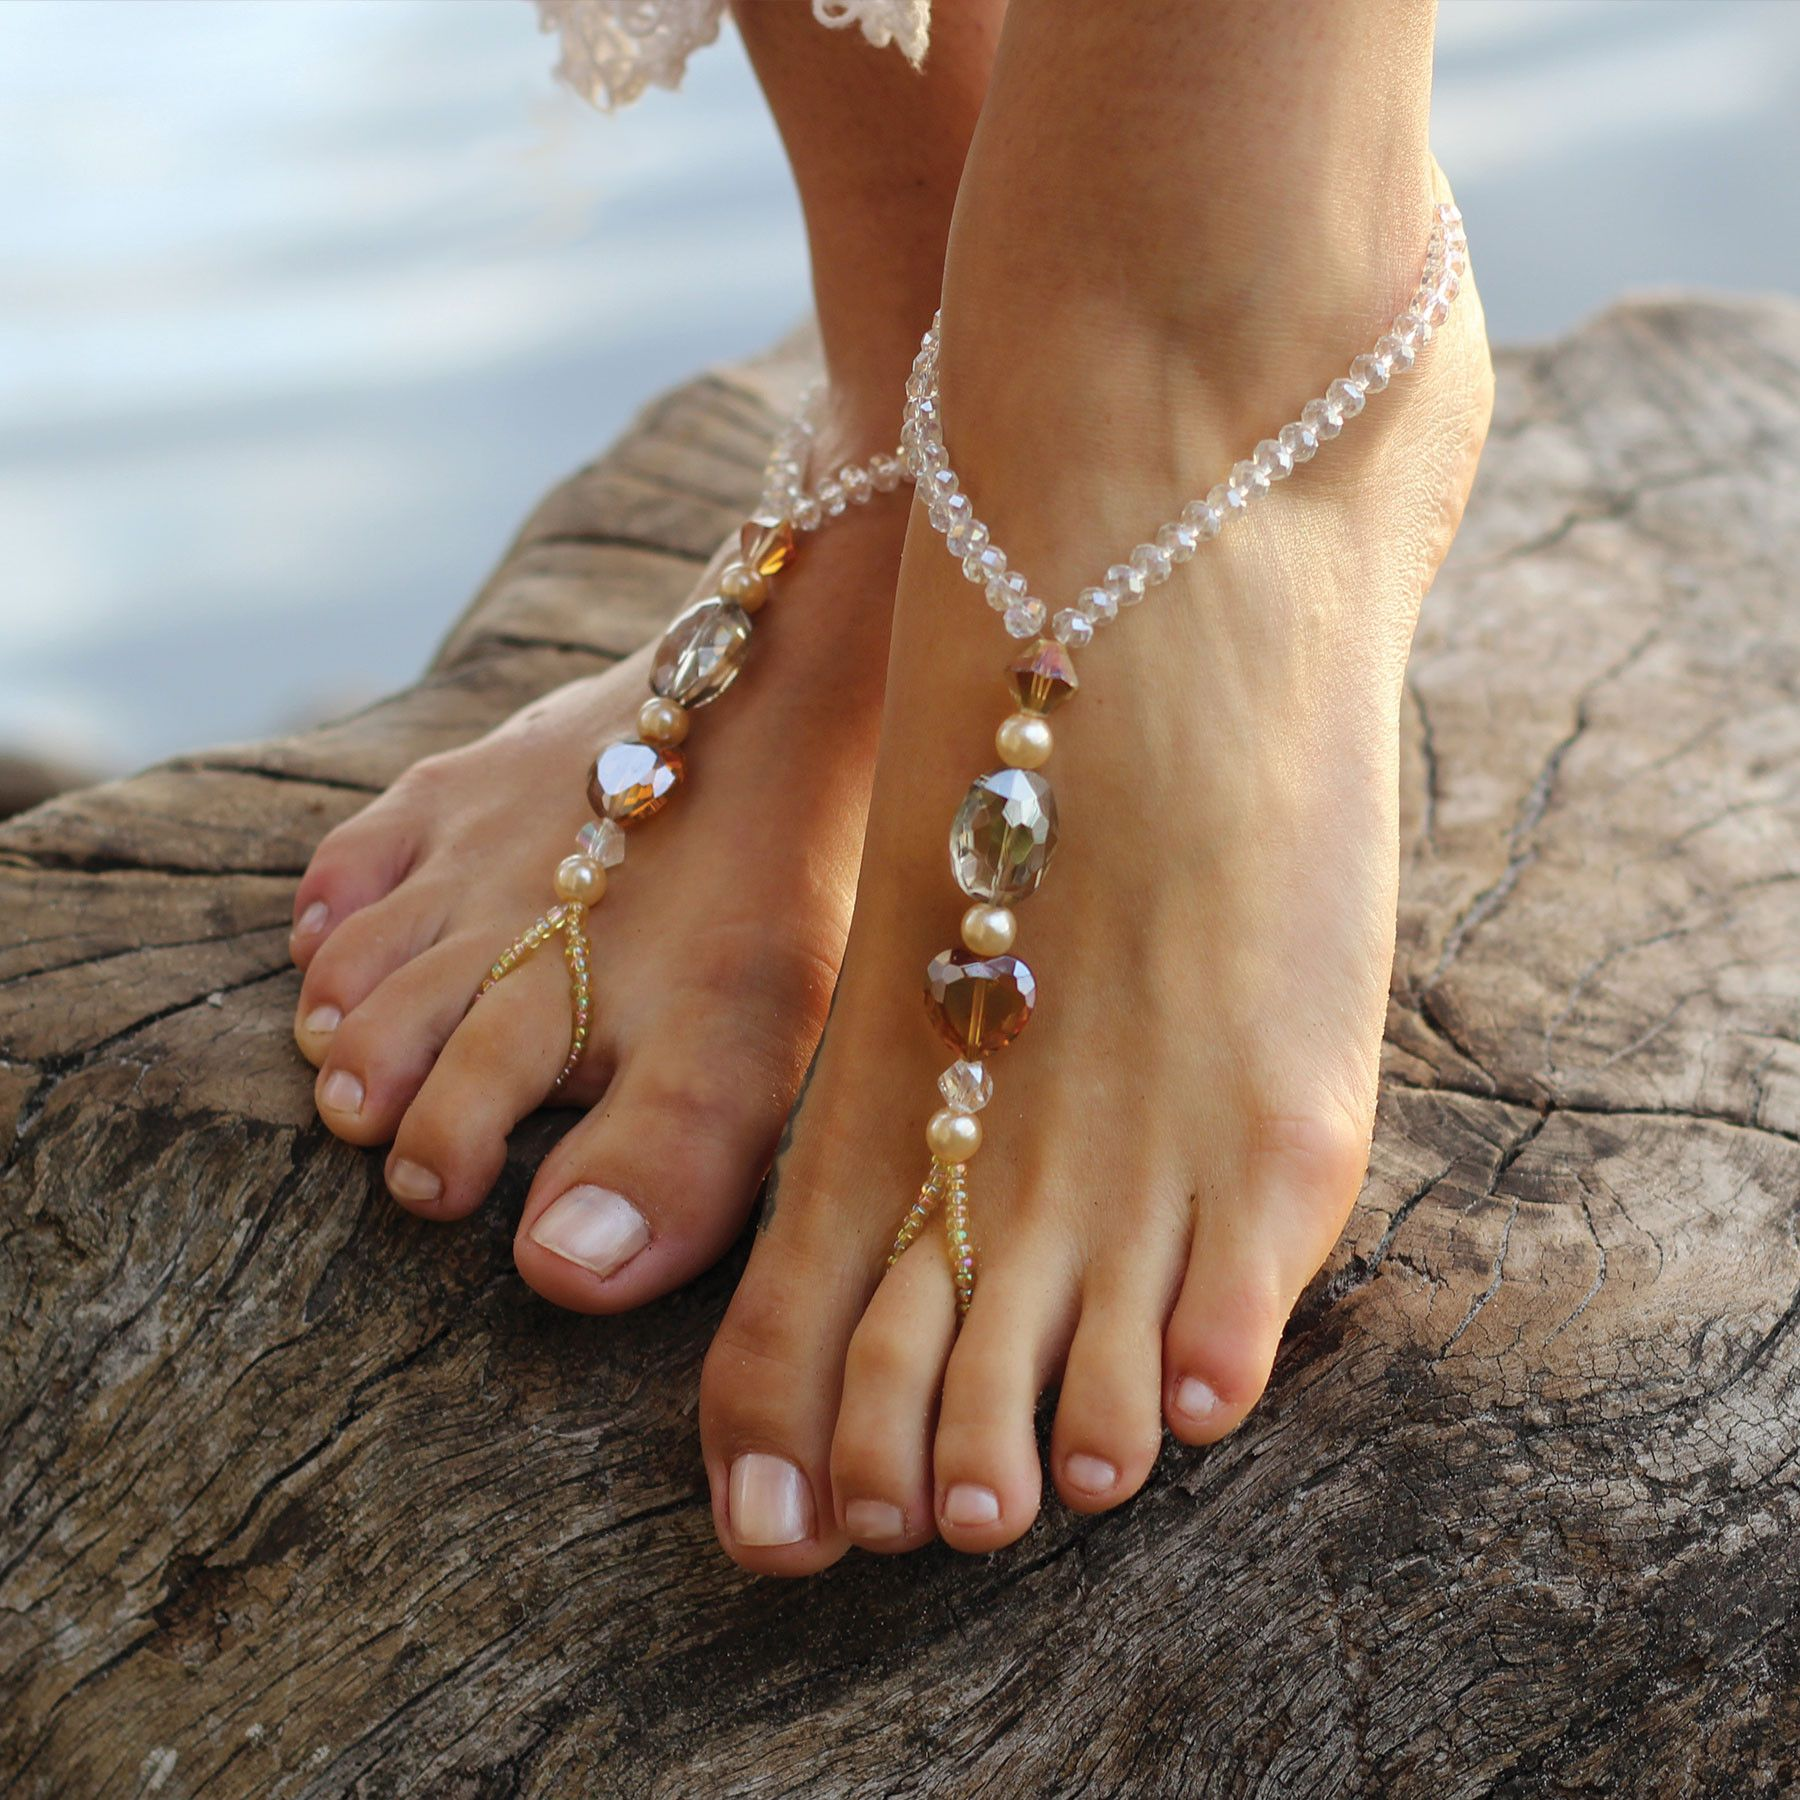 Galliano Jewelled Barefoot Sandals Soles